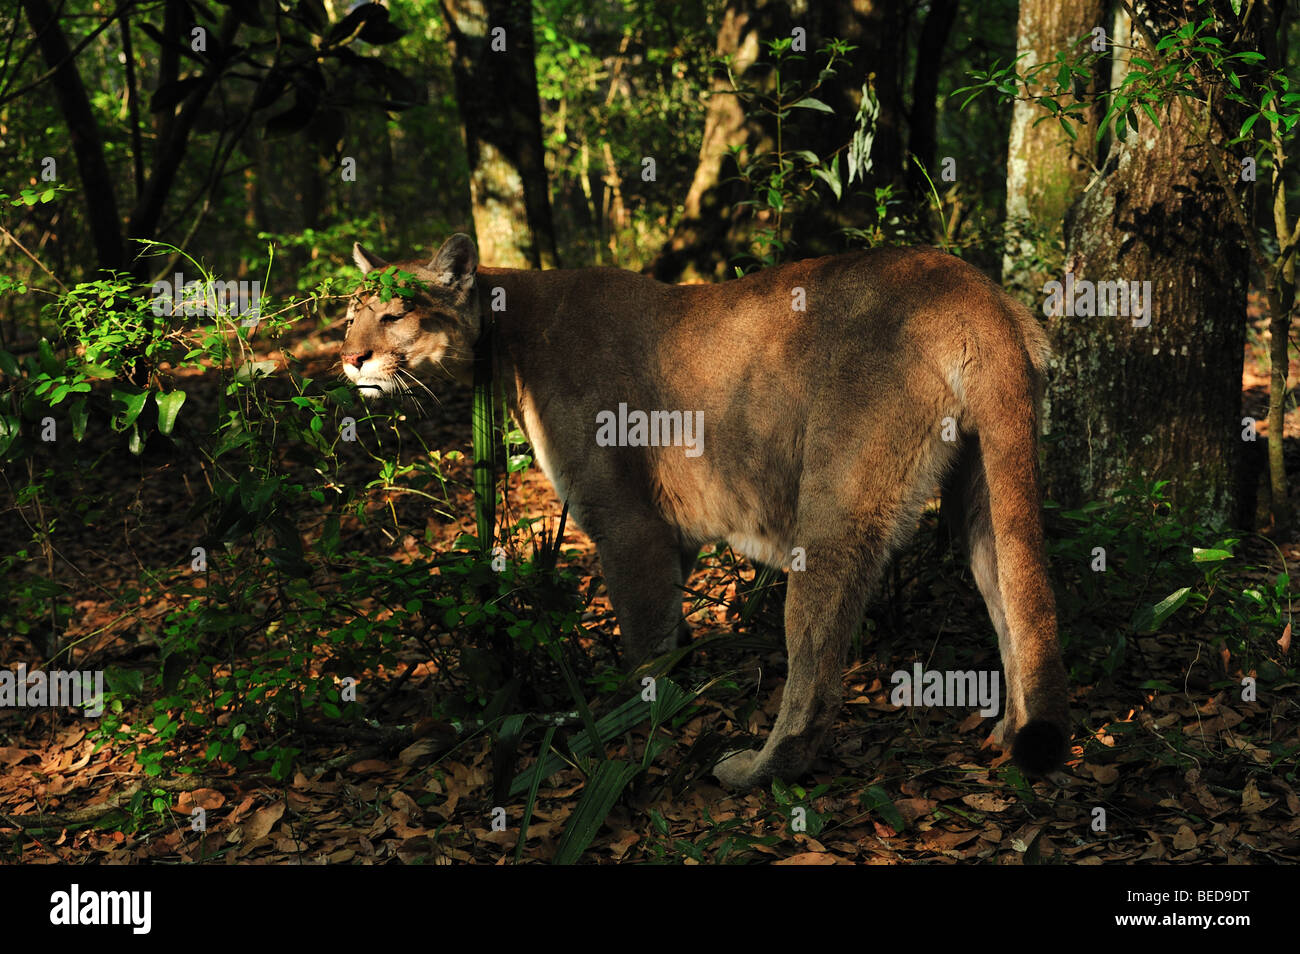 Florida Panther, Puma Concolor Coryi, Florida, in Gefangenschaft Stockbild